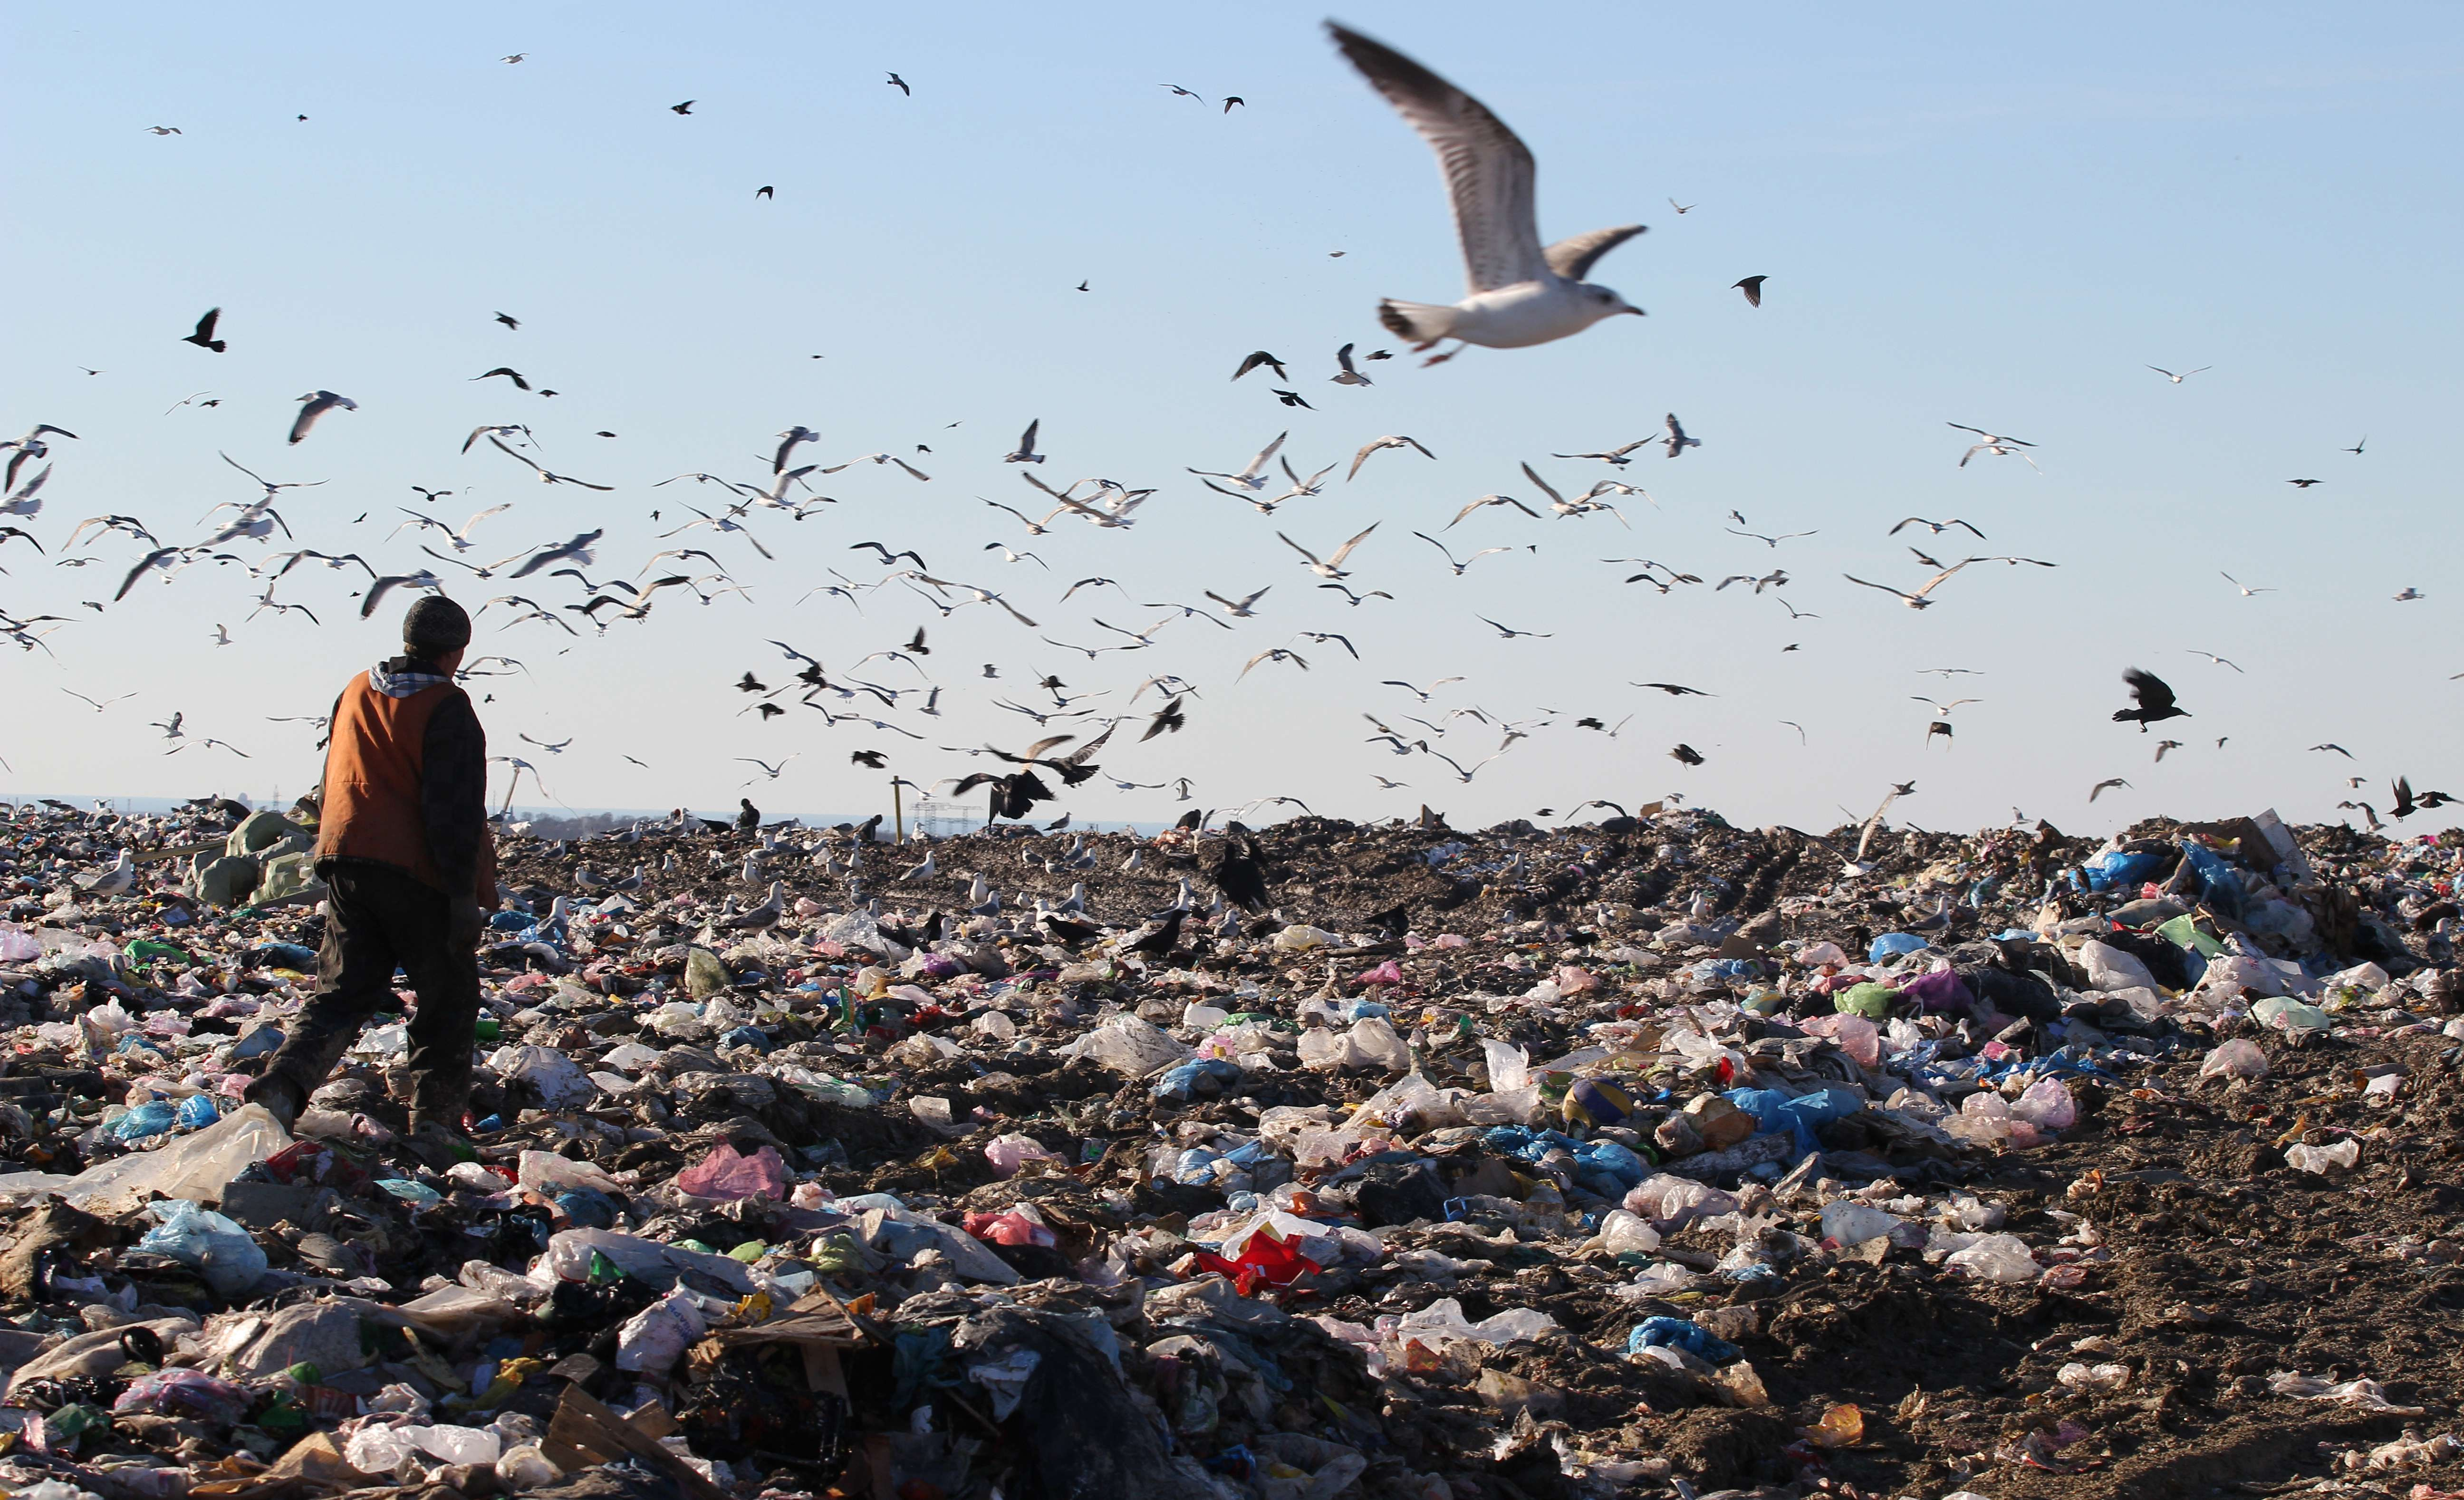 TOPSHOTS A man walks through heaps of wa...TOPSHOTS A man walks through heaps of waste as seagulls flock over a garbage dump in the Crimean city of Sevastopol on January 13, 2015. AFP PHOTO / YURI LASHOVYURI LASHOV/AFP/Getty Images